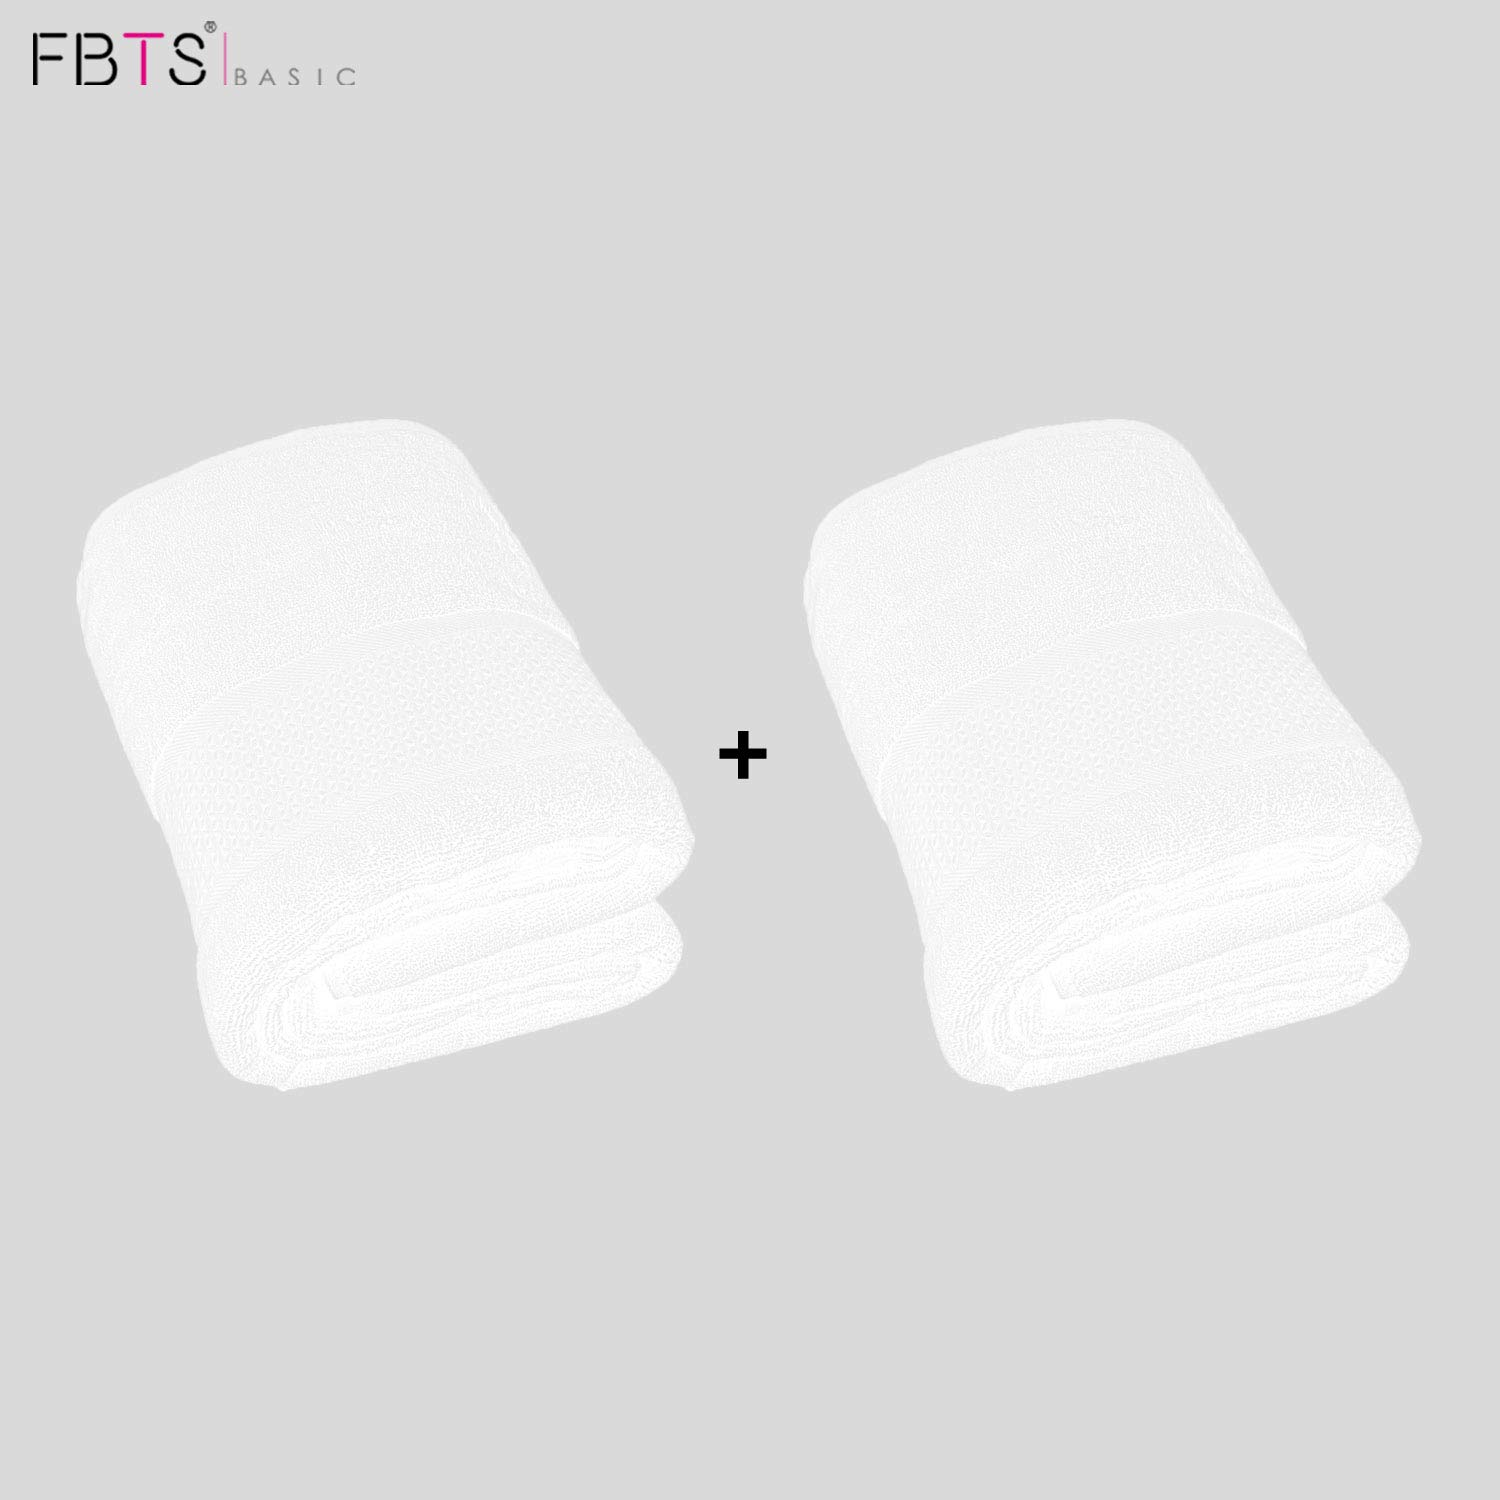 FBTS Basic Towel Sets Combination (Beige, 2 x Washcloths, 2 x Hand Towel, 2 x Bath Towel) 6 Pieces Highly Absorbent Extra Soft Professional Grade Five-Star Hotel Quality Fabritones FBTS-BE-6S